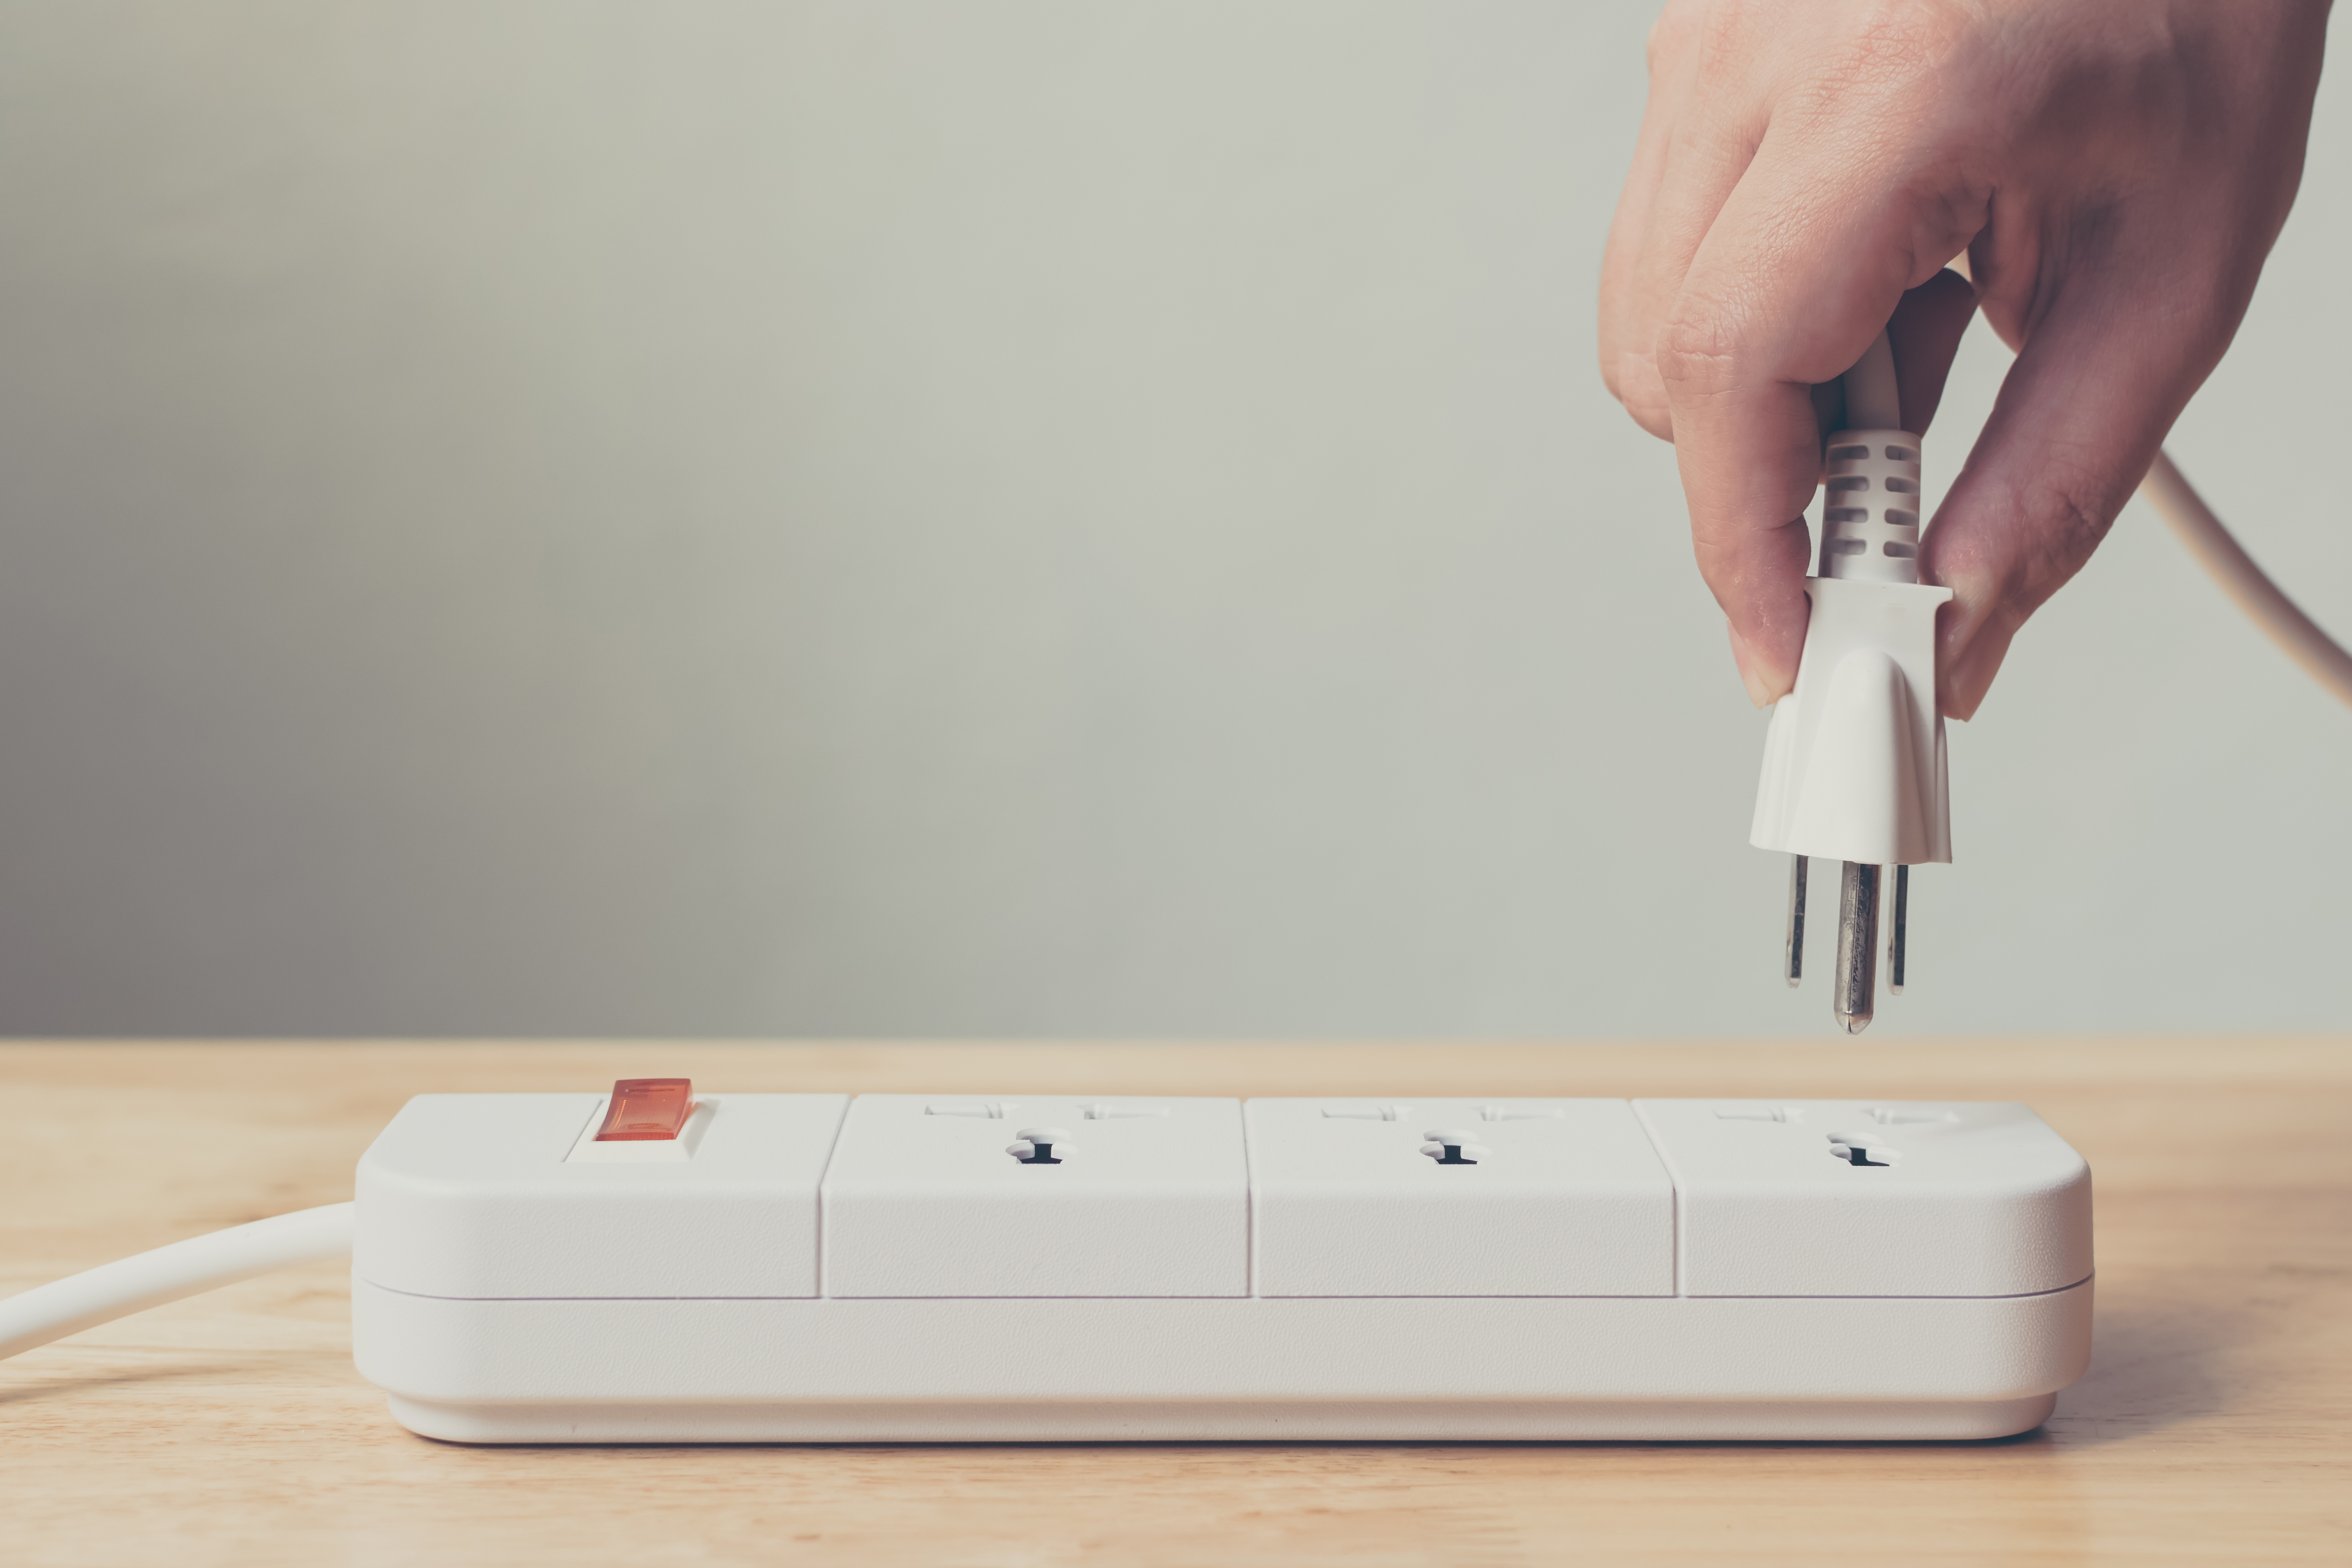 5 'Shocking' Electrical Hazards You Should Be Aware Of